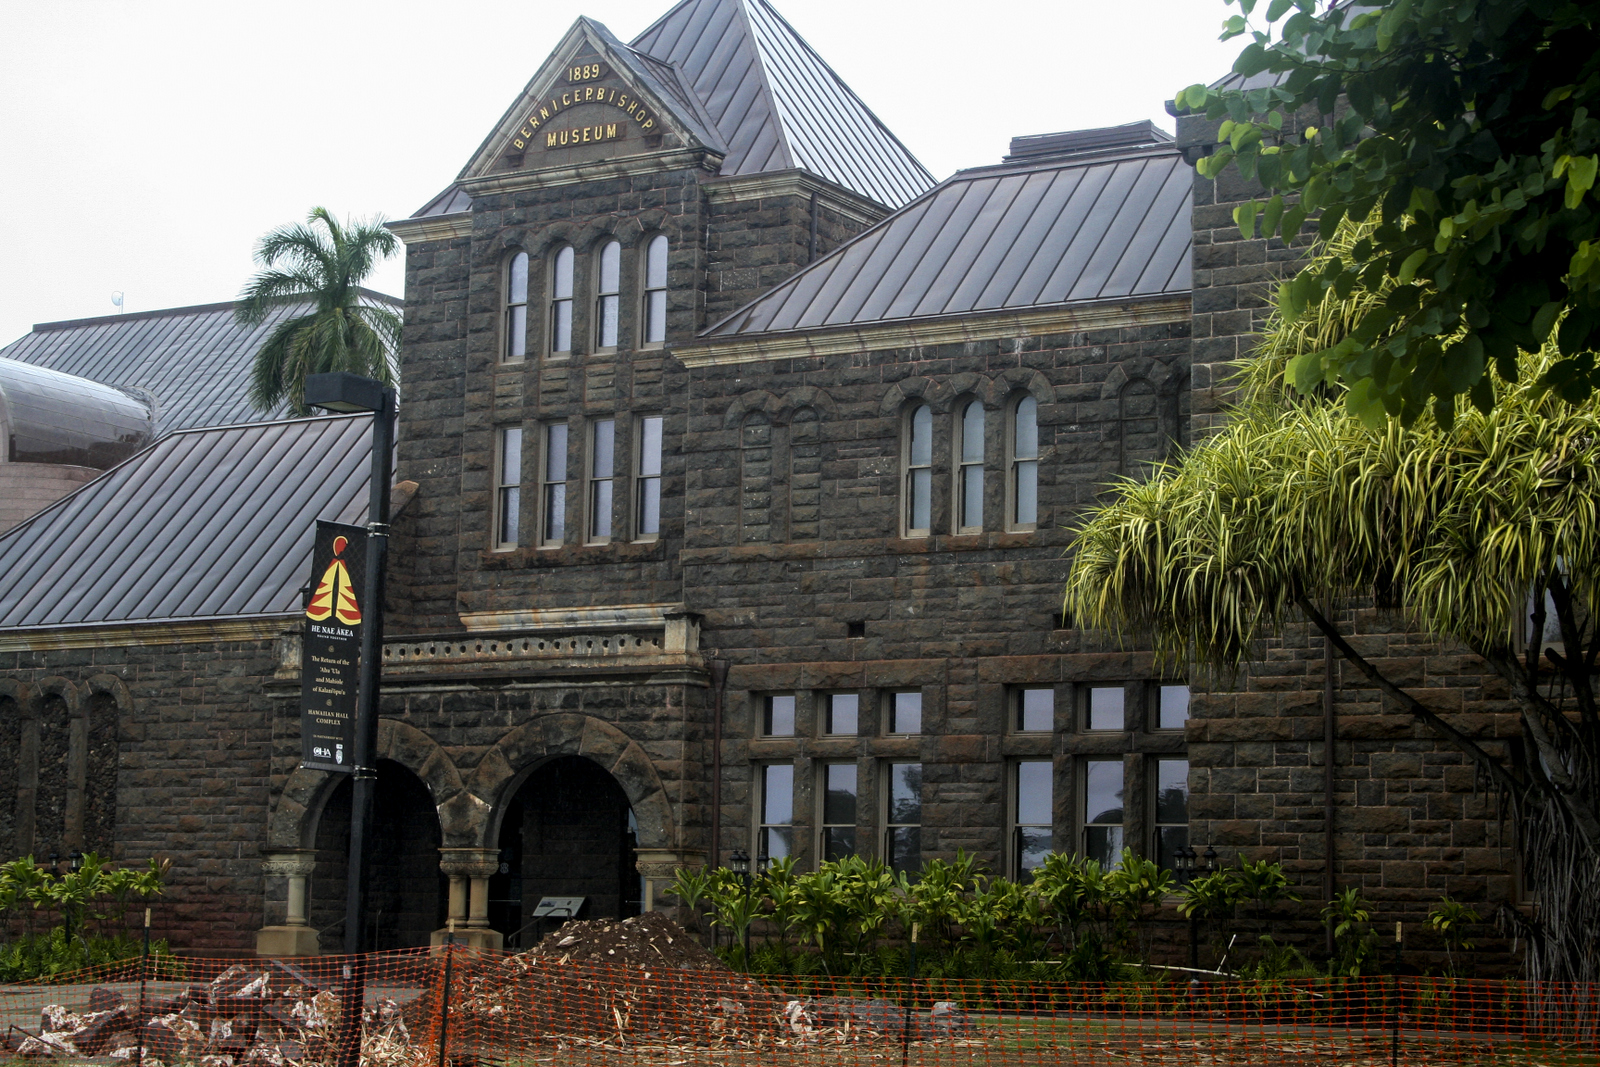 The Bishop Museum. From Digging Deeper into Hawaiian History on the Hawai'i Monarchs Tour